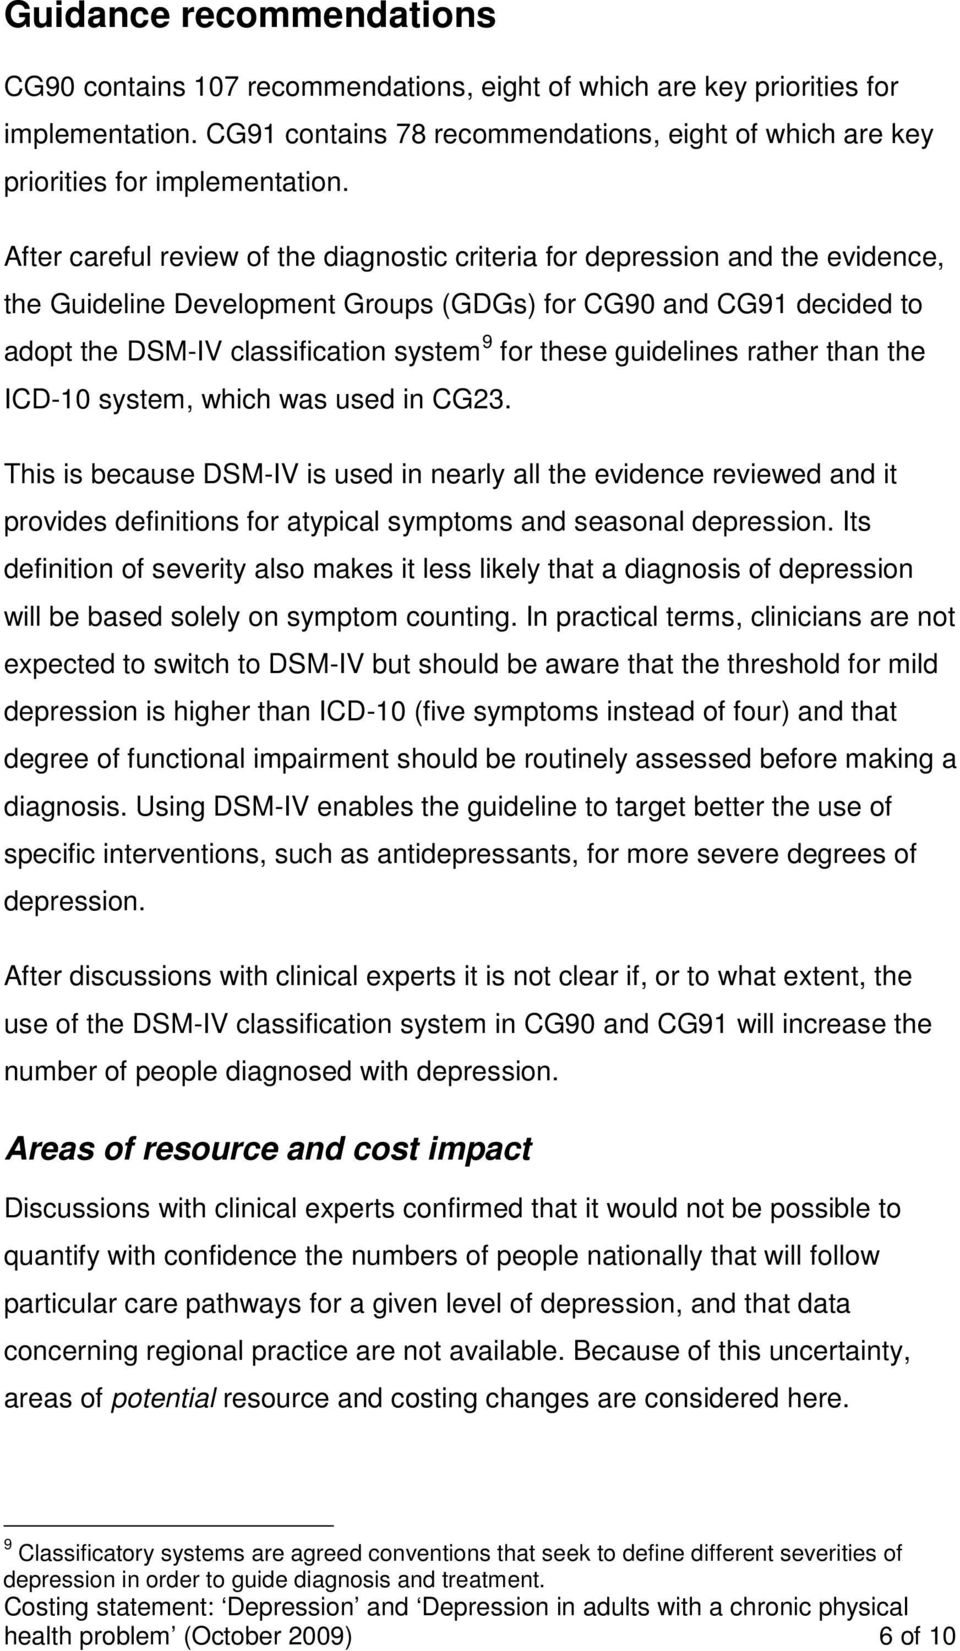 After careful review of the diagnostic criteria for depression and the evidence, the Guideline Development Groups (GDGs) for CG90 and CG91 decided to adopt the DSM-IV classification system 9 for